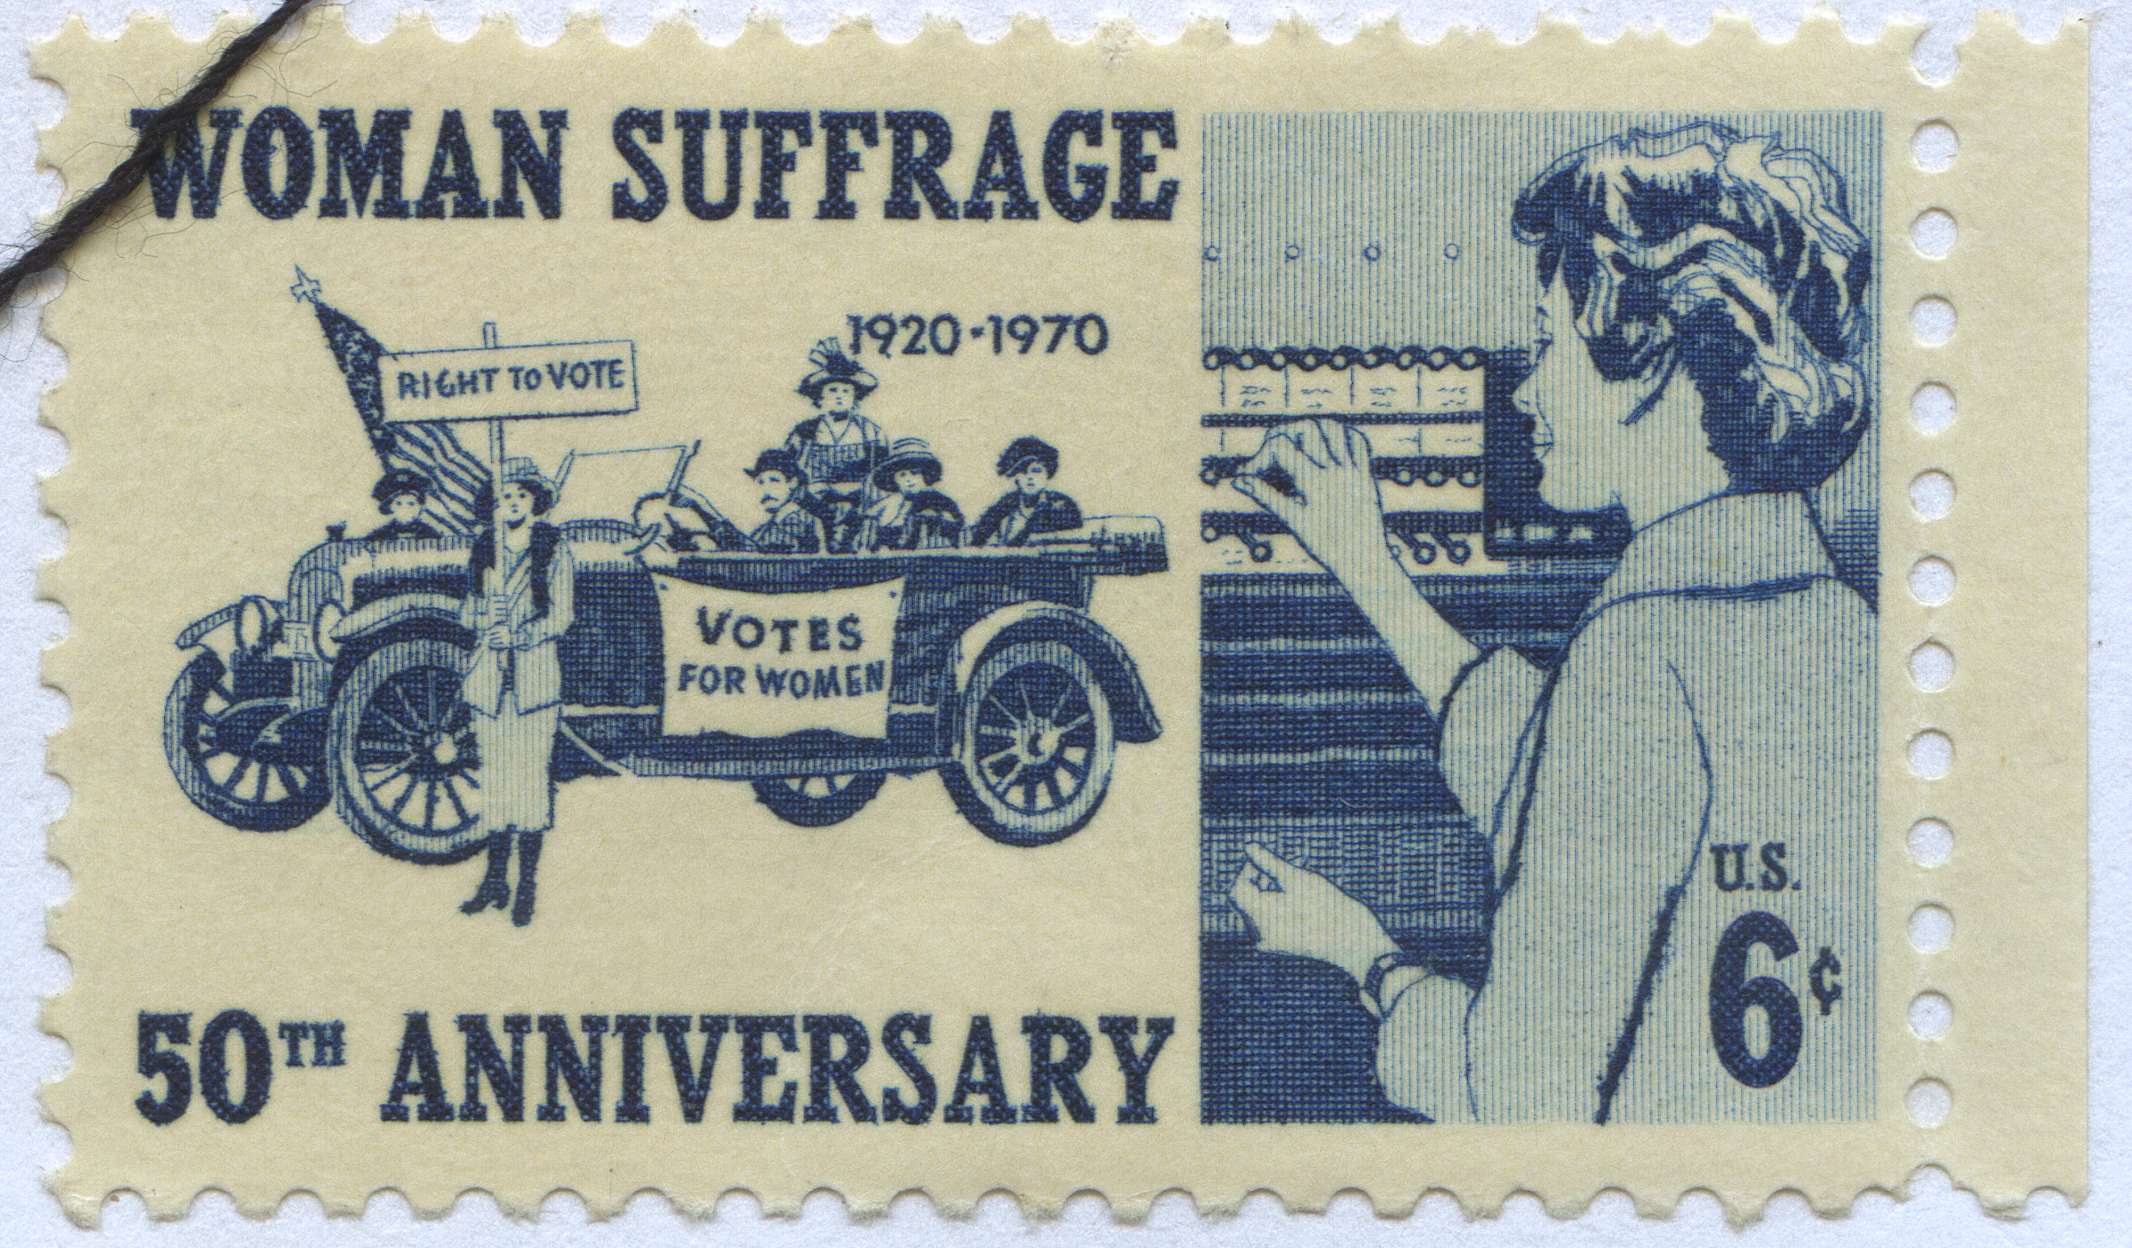 1970 postage stamp commemorating the 19th Amendment